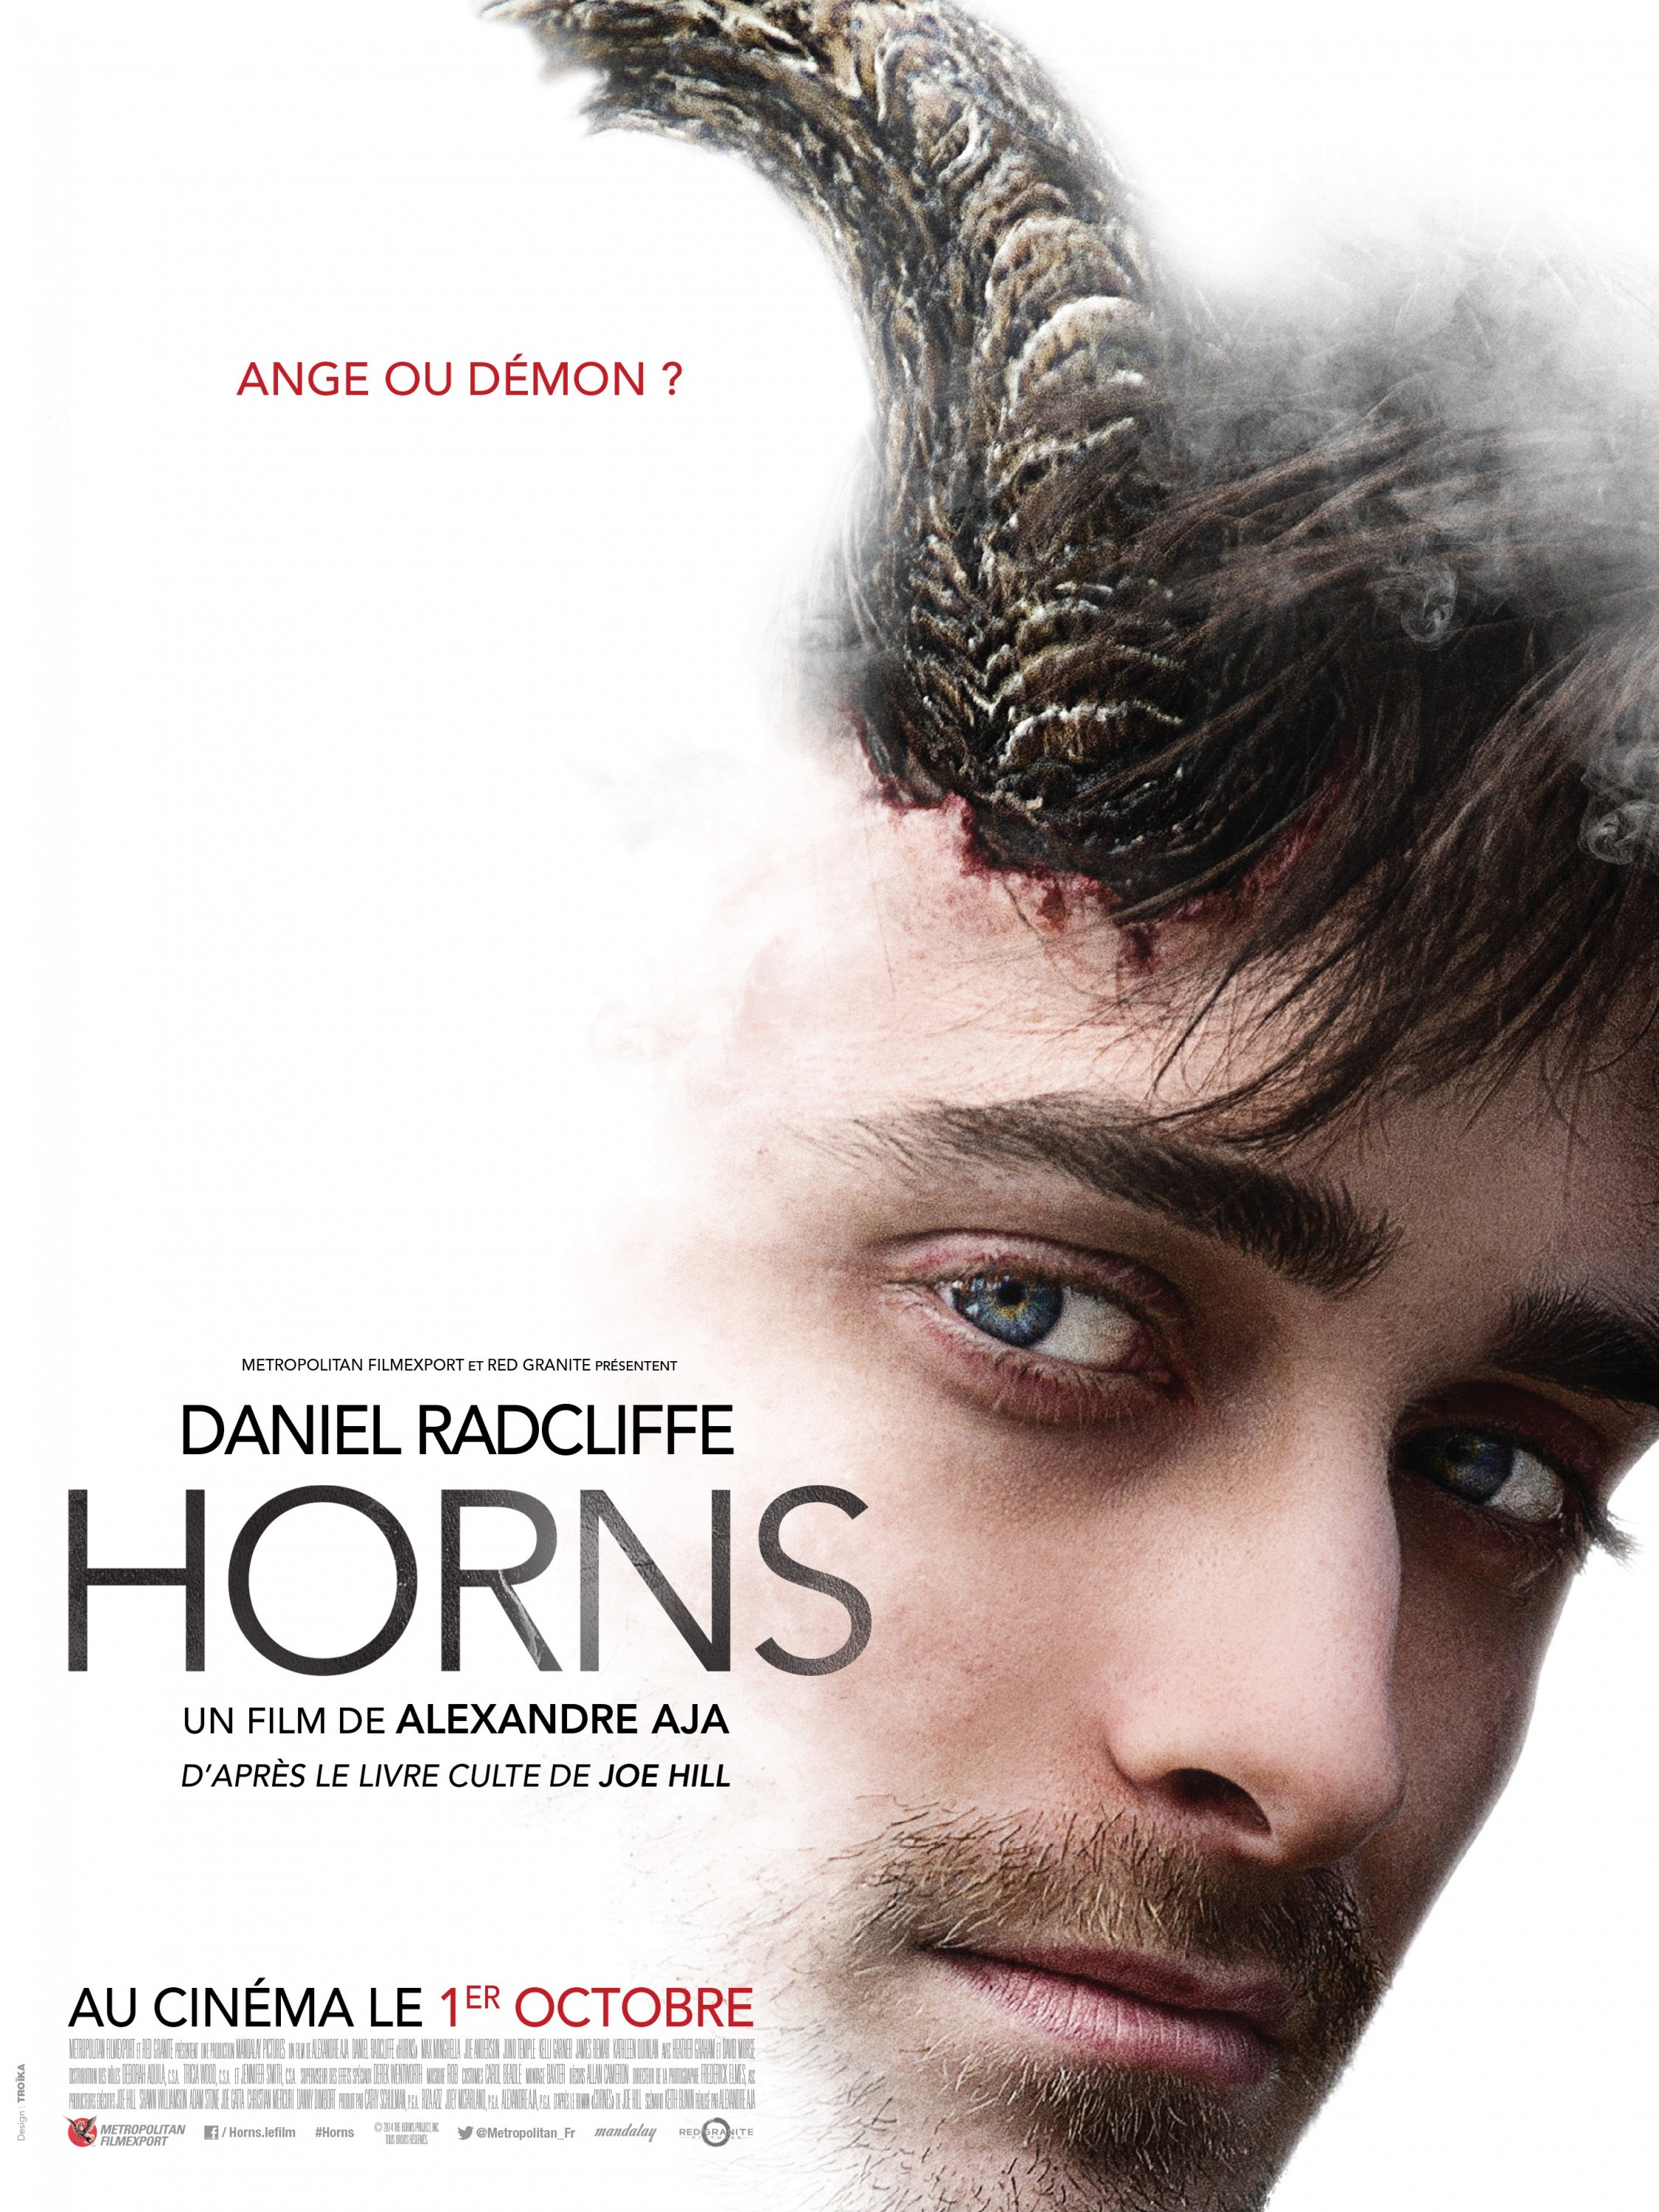 Three impressive posters for Alexandre Aja's Horns - Scannain Horns Movie Poster